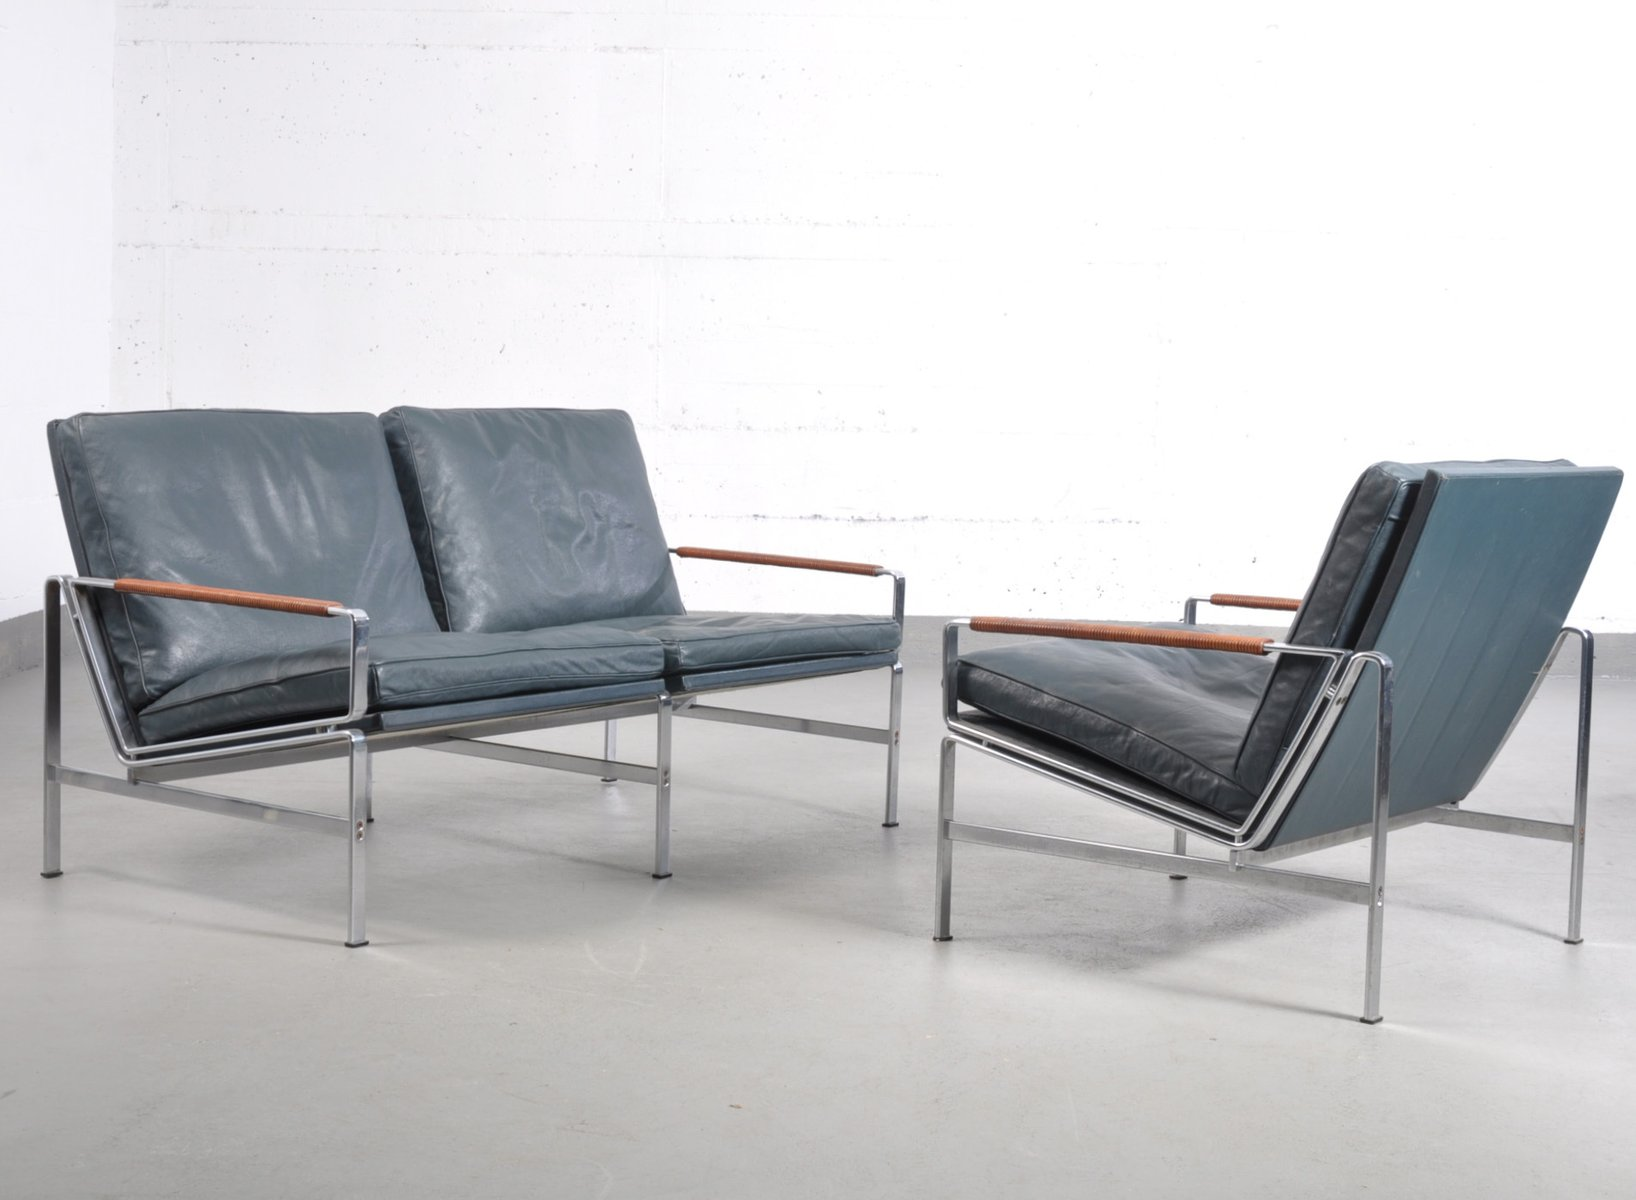 Vintage FK 6720 Chair & Two Seater Sofa by Fabricius & Kastholm